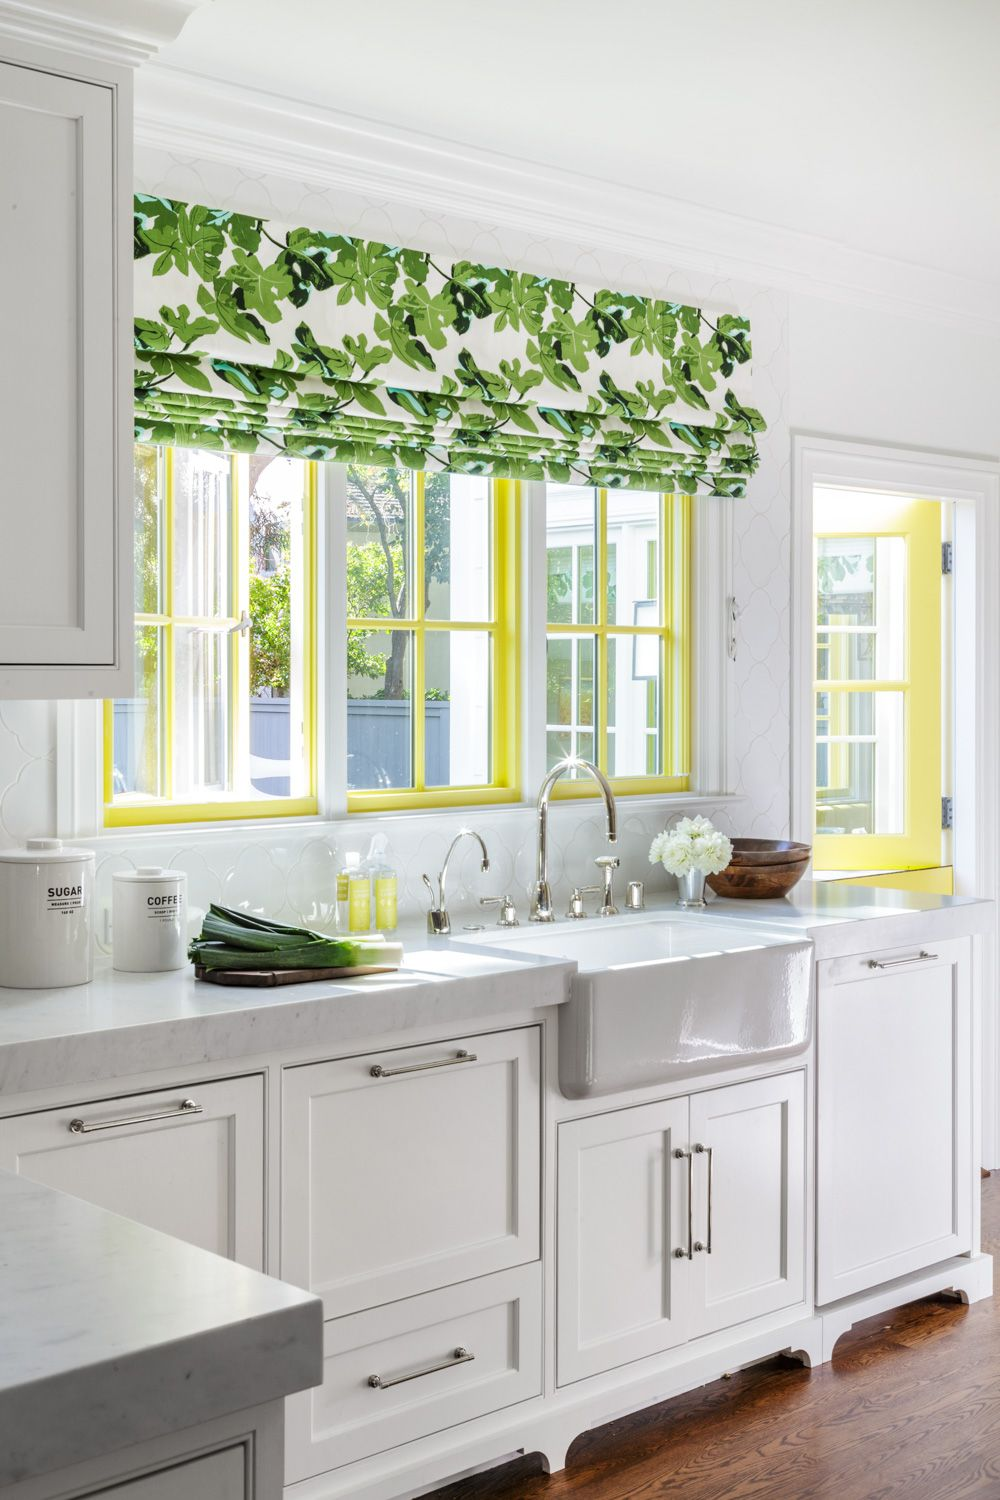 White kitchen with yellow accents | Ann Lowengart Interiors ...